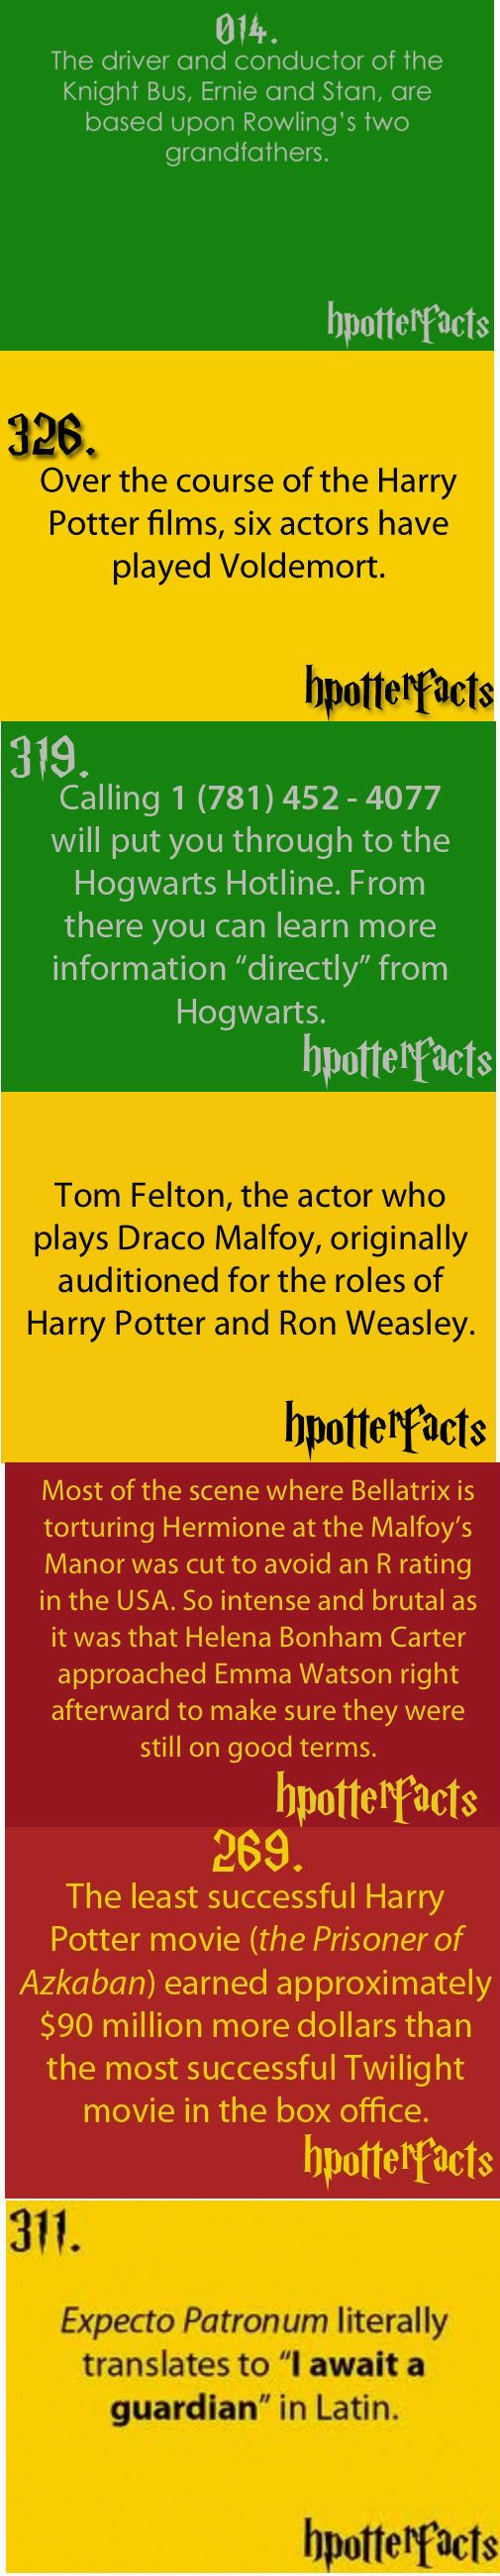 HP Facts, yeah except Ralph Fines played Voldermort in all of the films